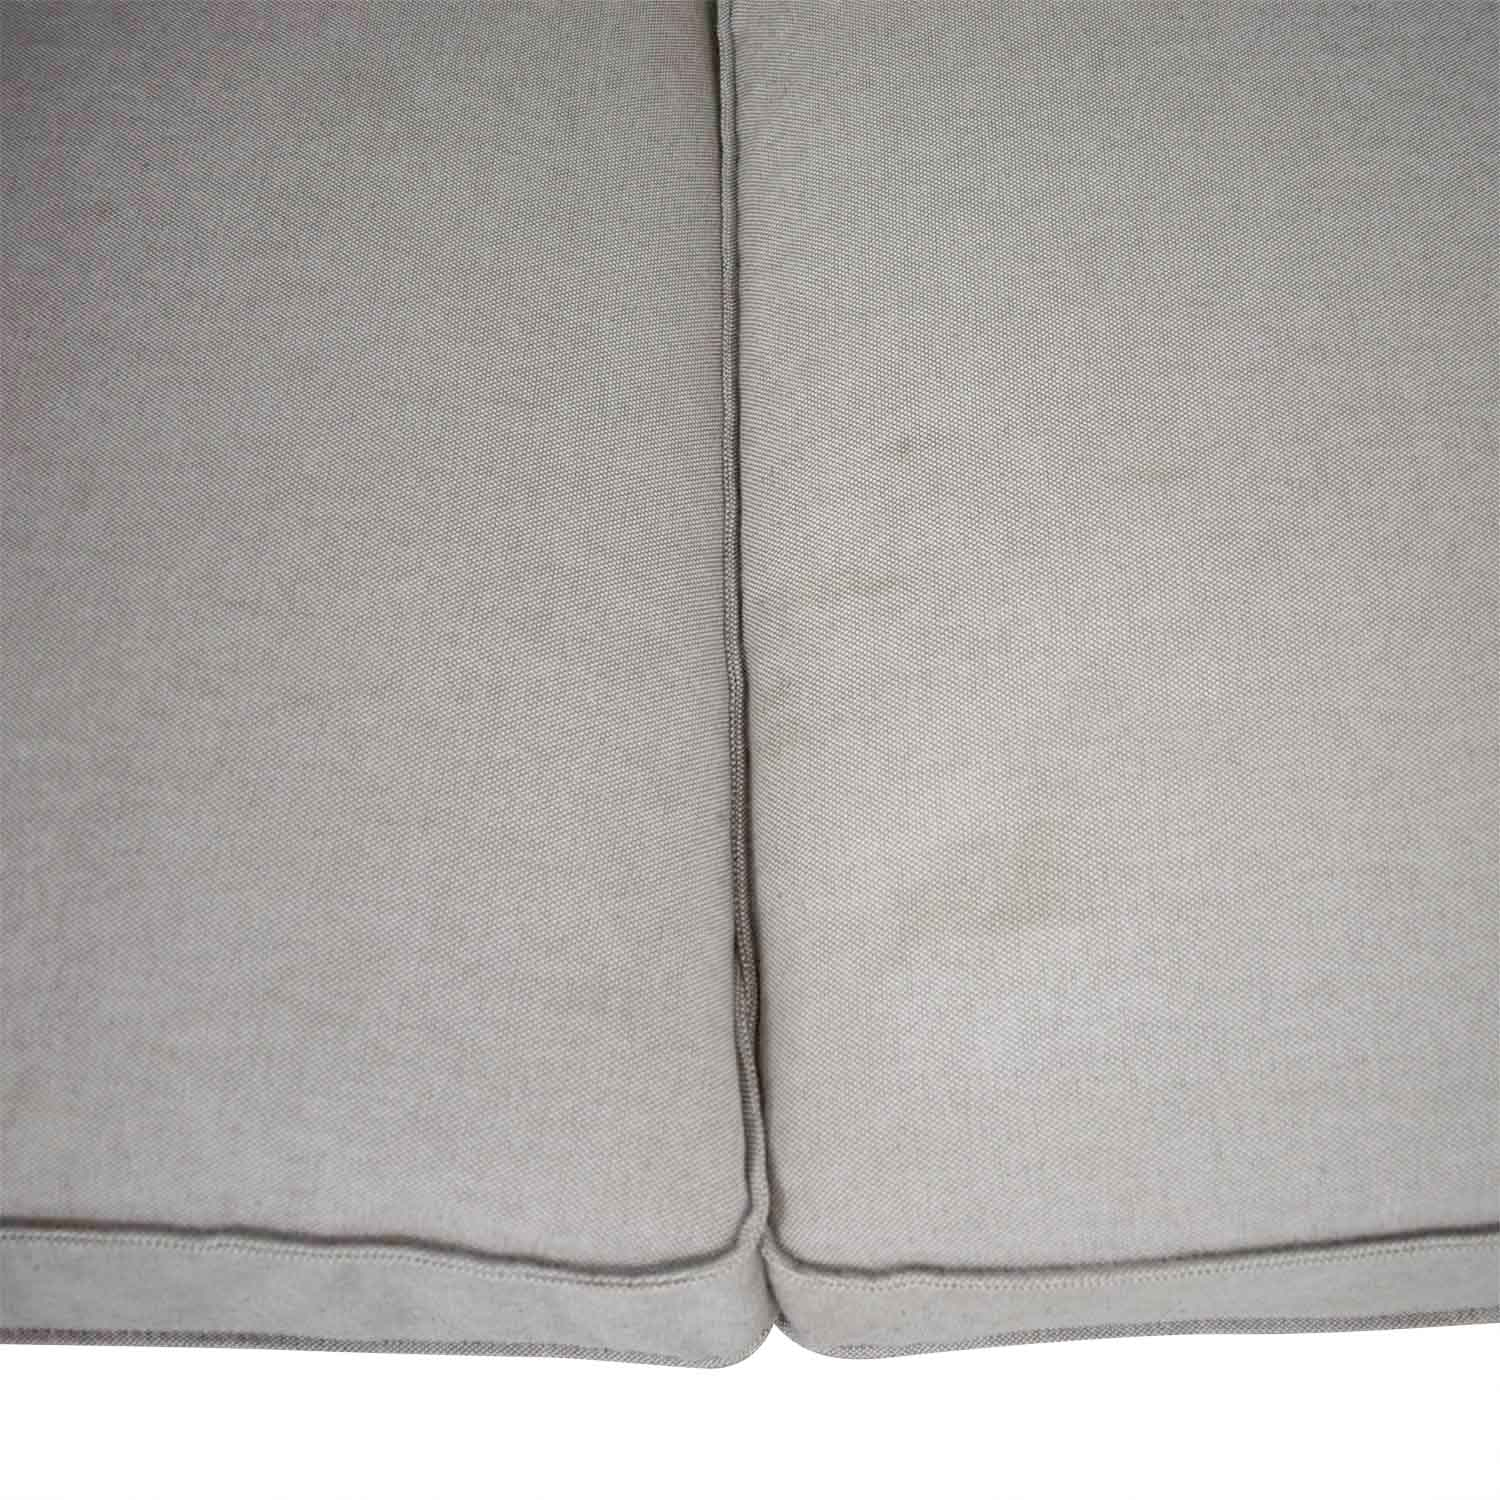 IKEA IKEA Kivik Light Grey Sofa dimensions